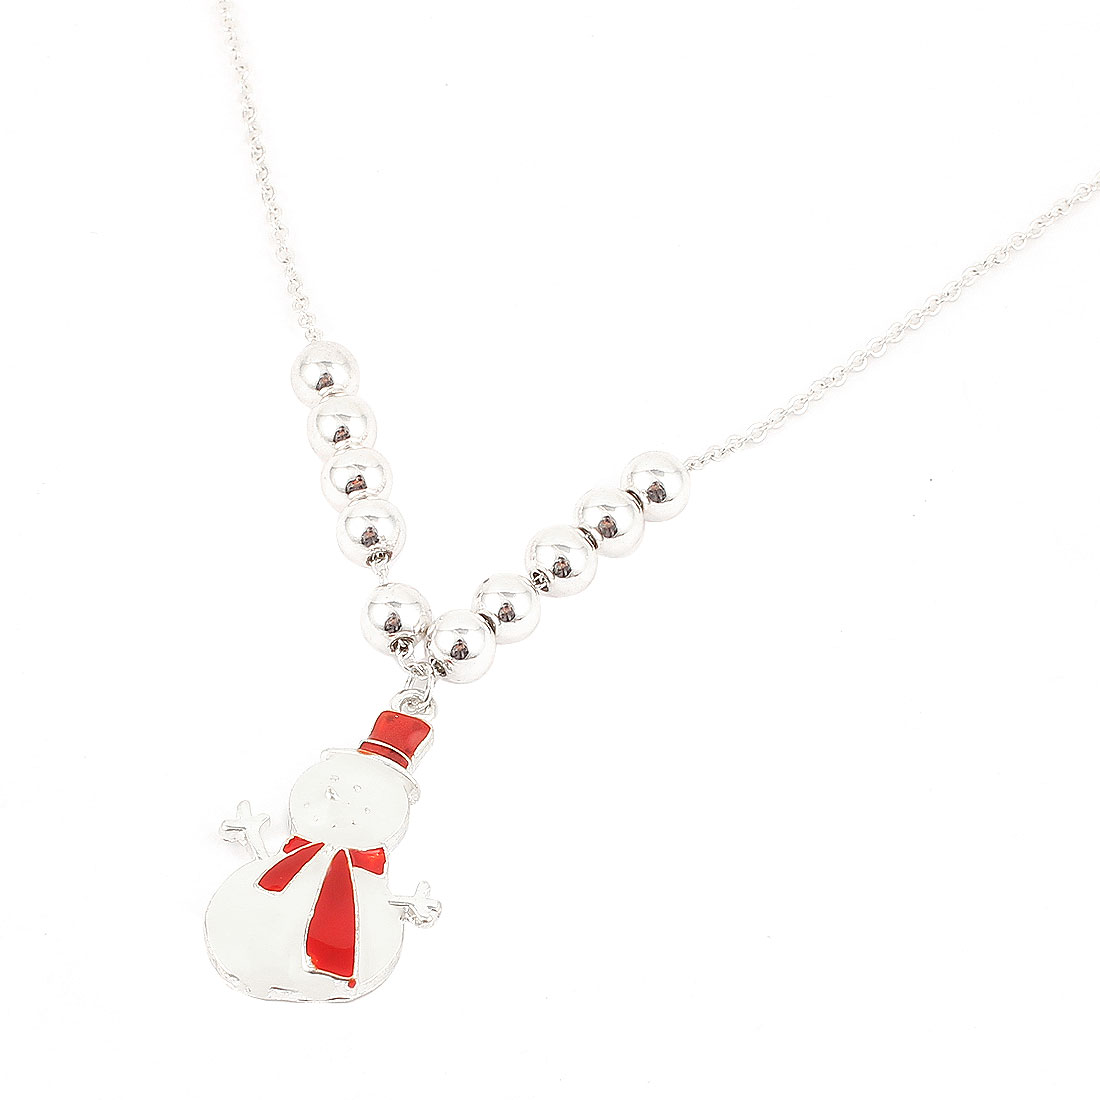 Silver Tone White Red Metal Snowman Design Pendant Lobster Buckle Strip Link Slim Chain Necklace Neckwear Collar for Ladies Women